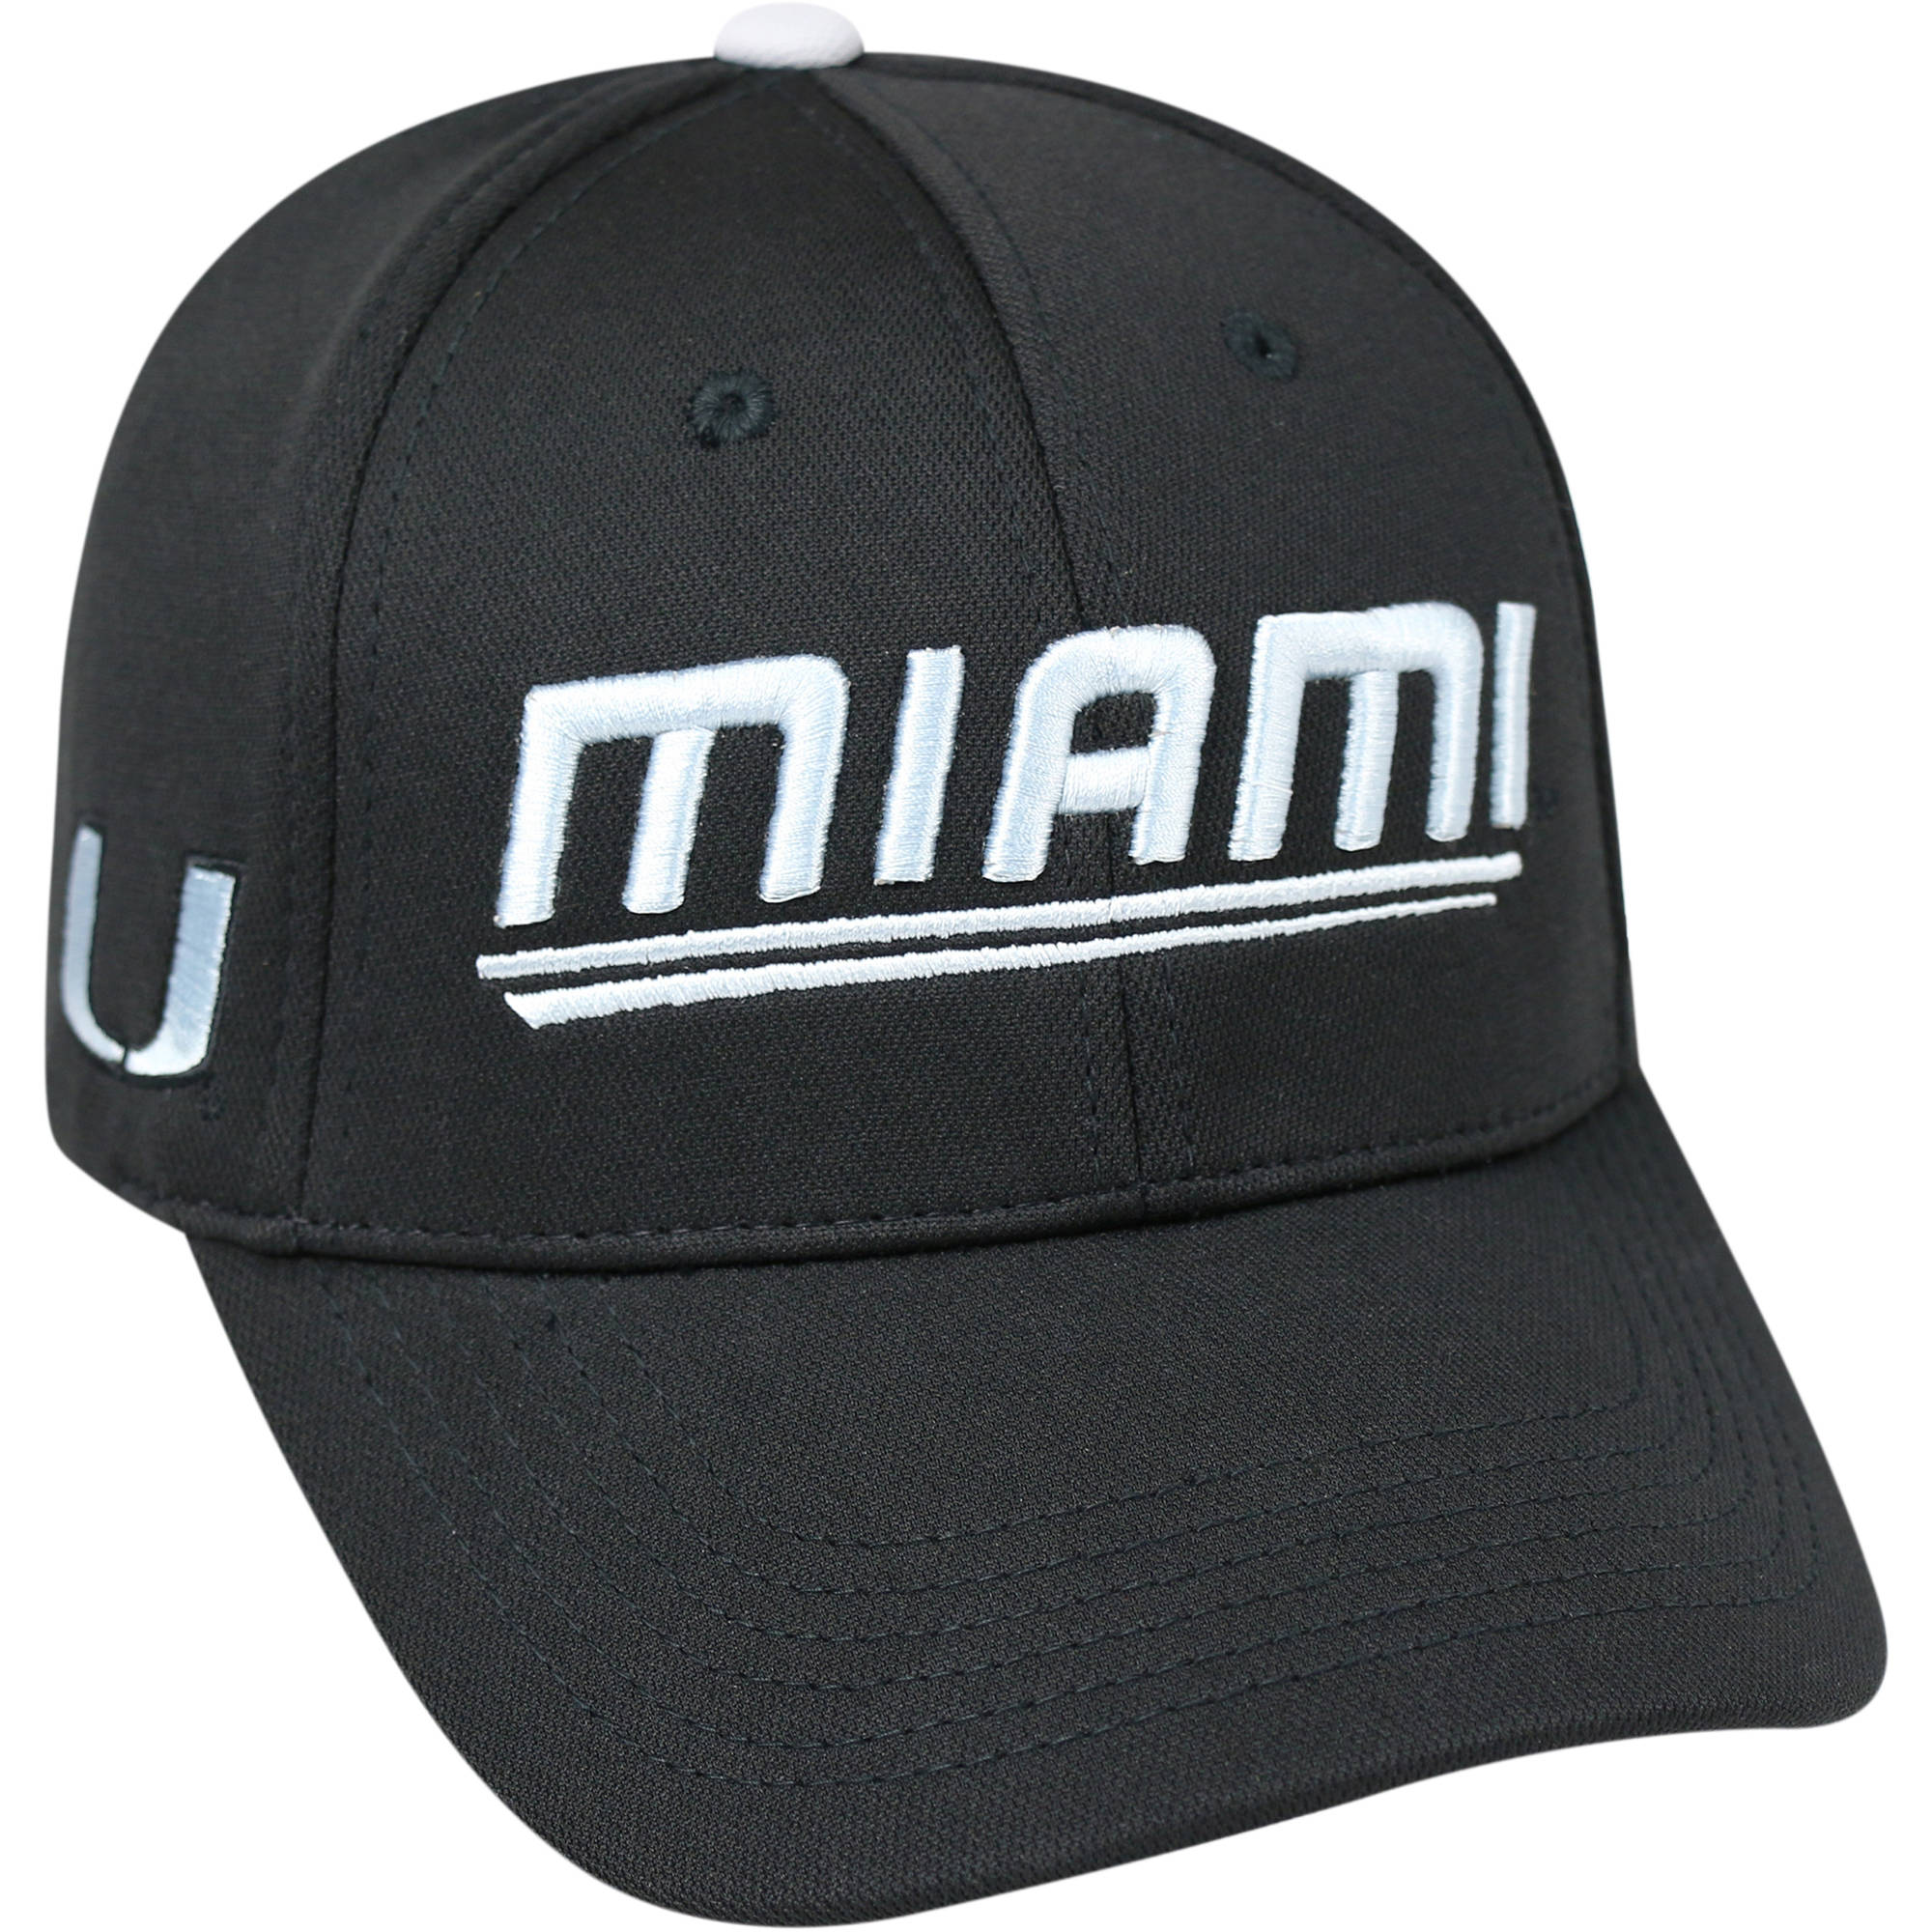 University Of Miami Hurricanes Black Baseball Cap